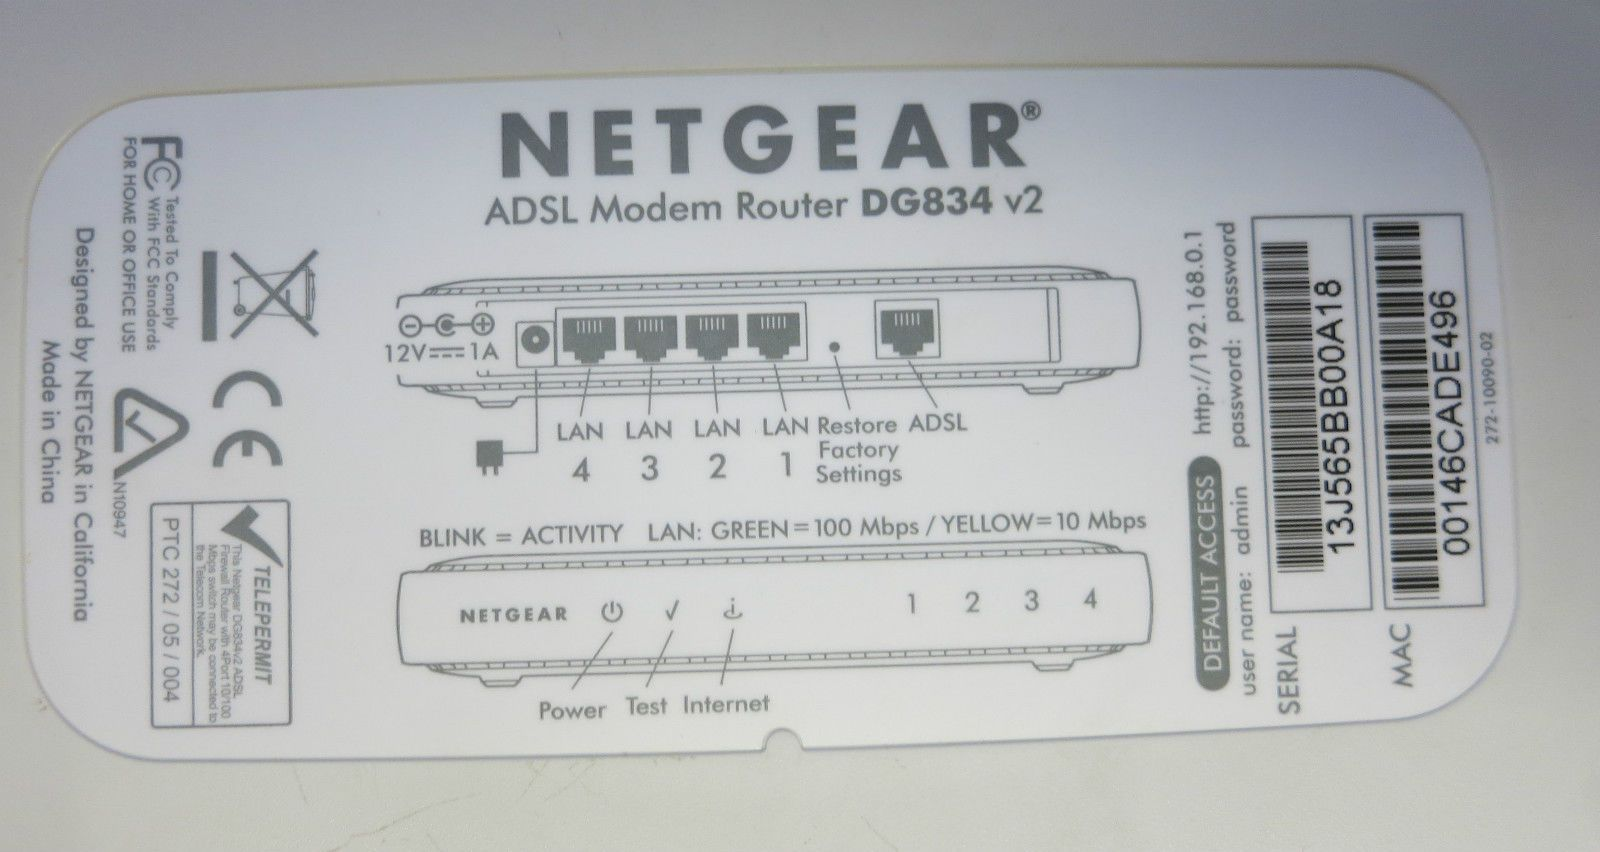 netgear dg834 v2 wired adsl firewall router with 4 port 10 100 mbps switch [3] 38060 p netgear dg834 v2 wired adsl firewall router with 4 port 10 100  at n-0.co